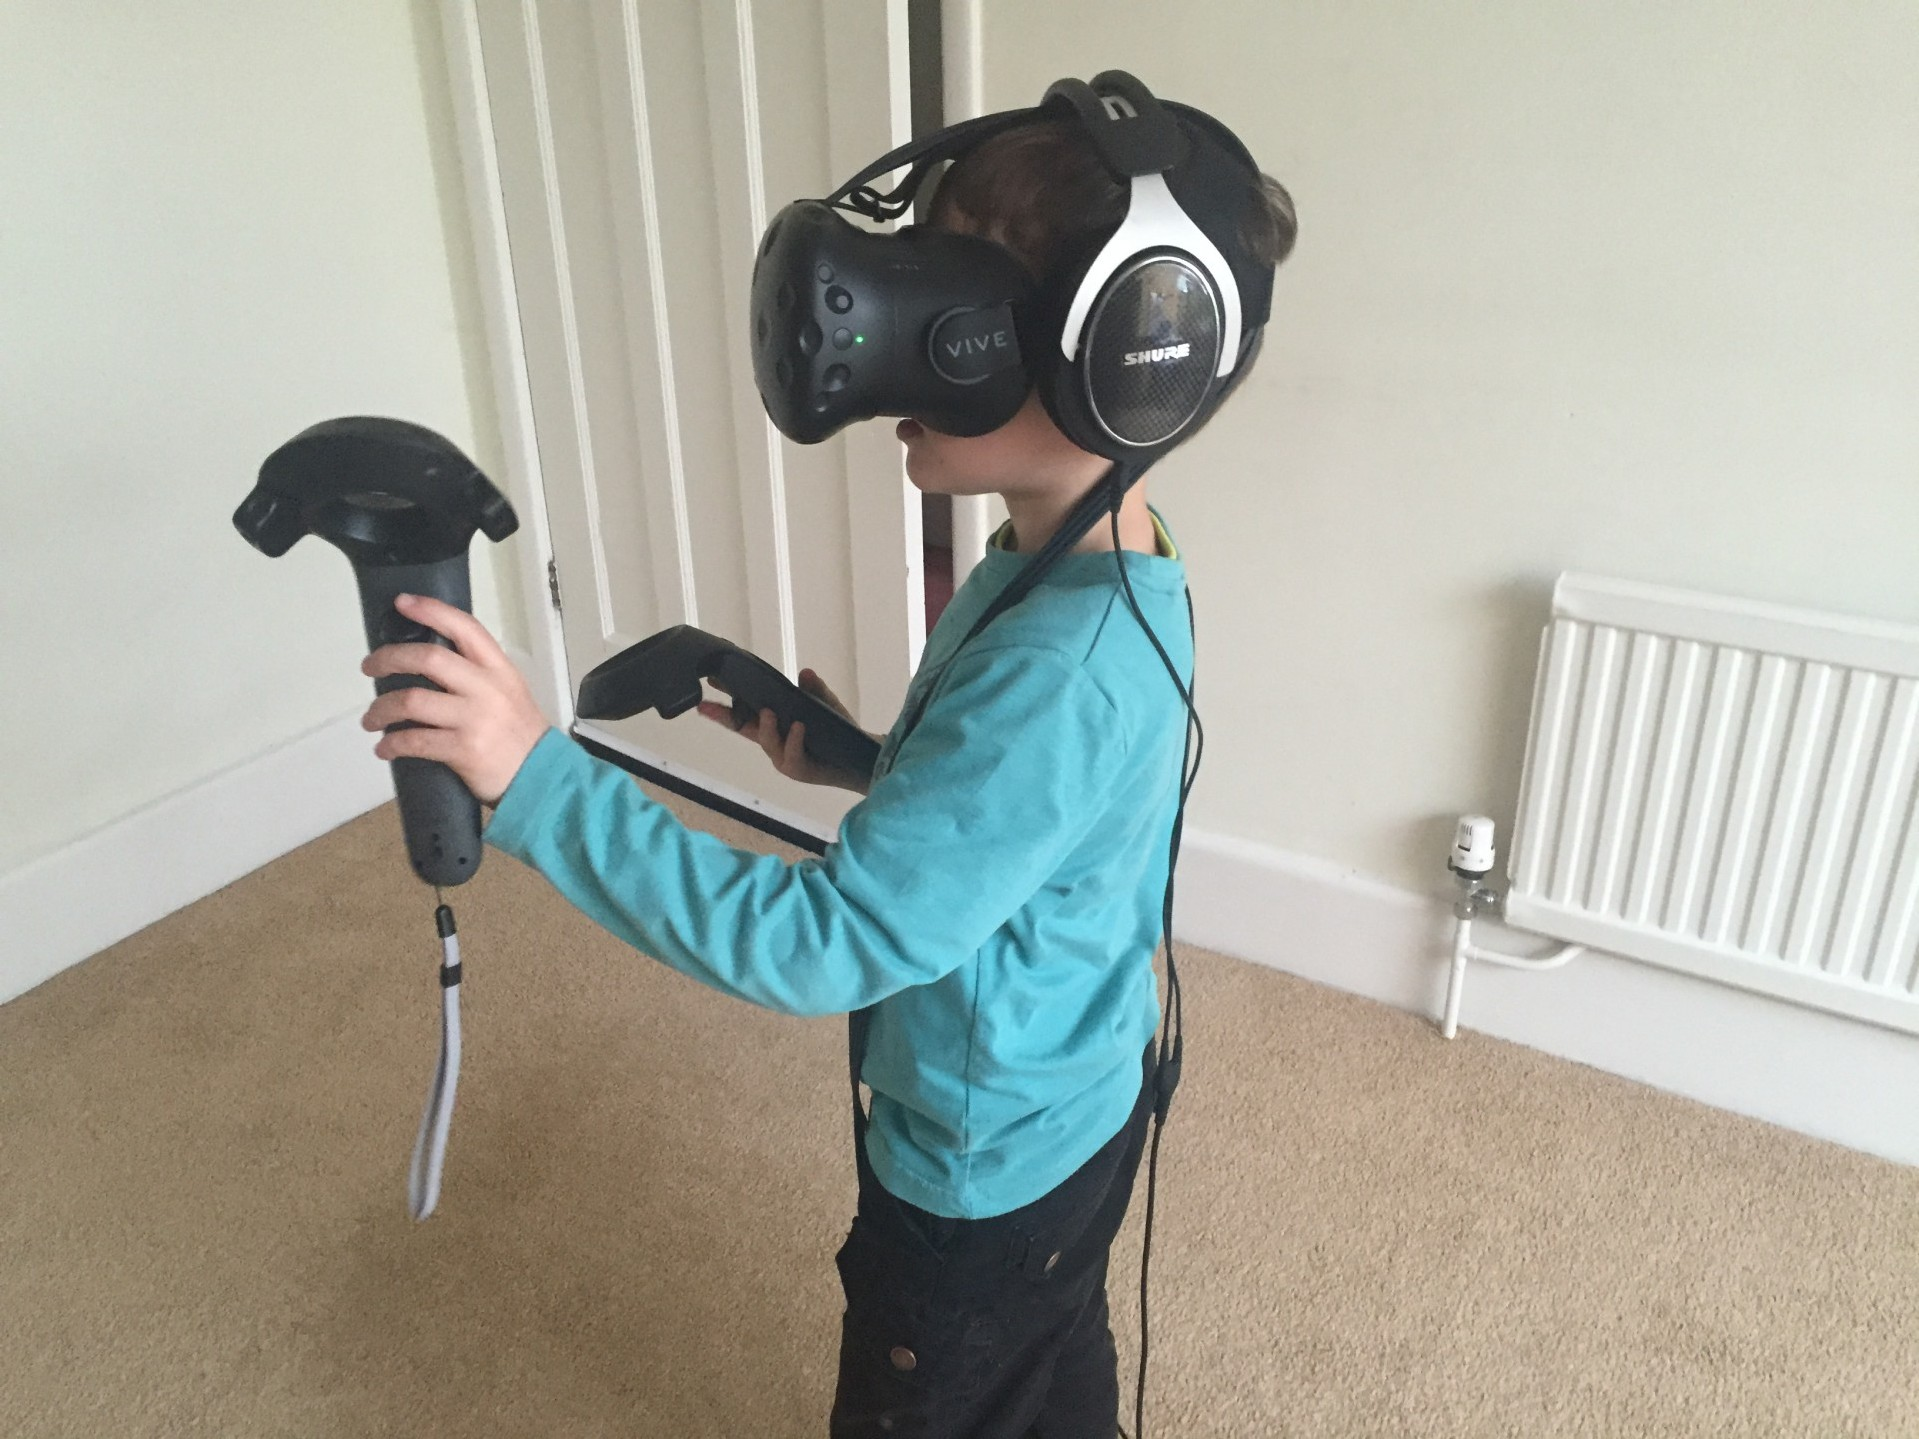 HTC Vive Review: A Mesmerising VR Experience, if You Have